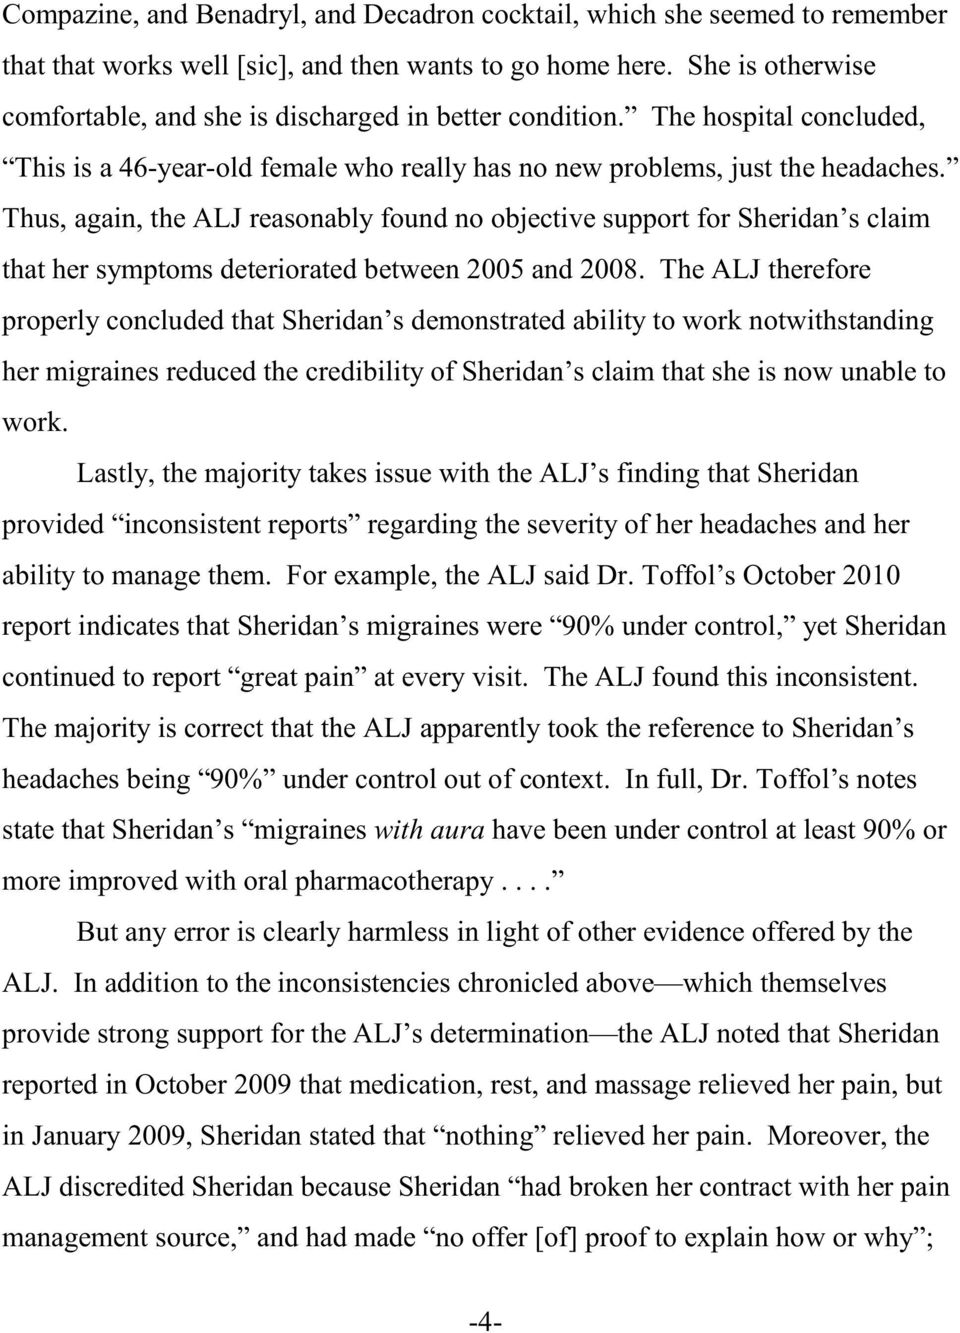 Thus, again, the ALJ reasonably found no objective support for Sheridan s claim that her symptoms deteriorated between 2005 and 2008.